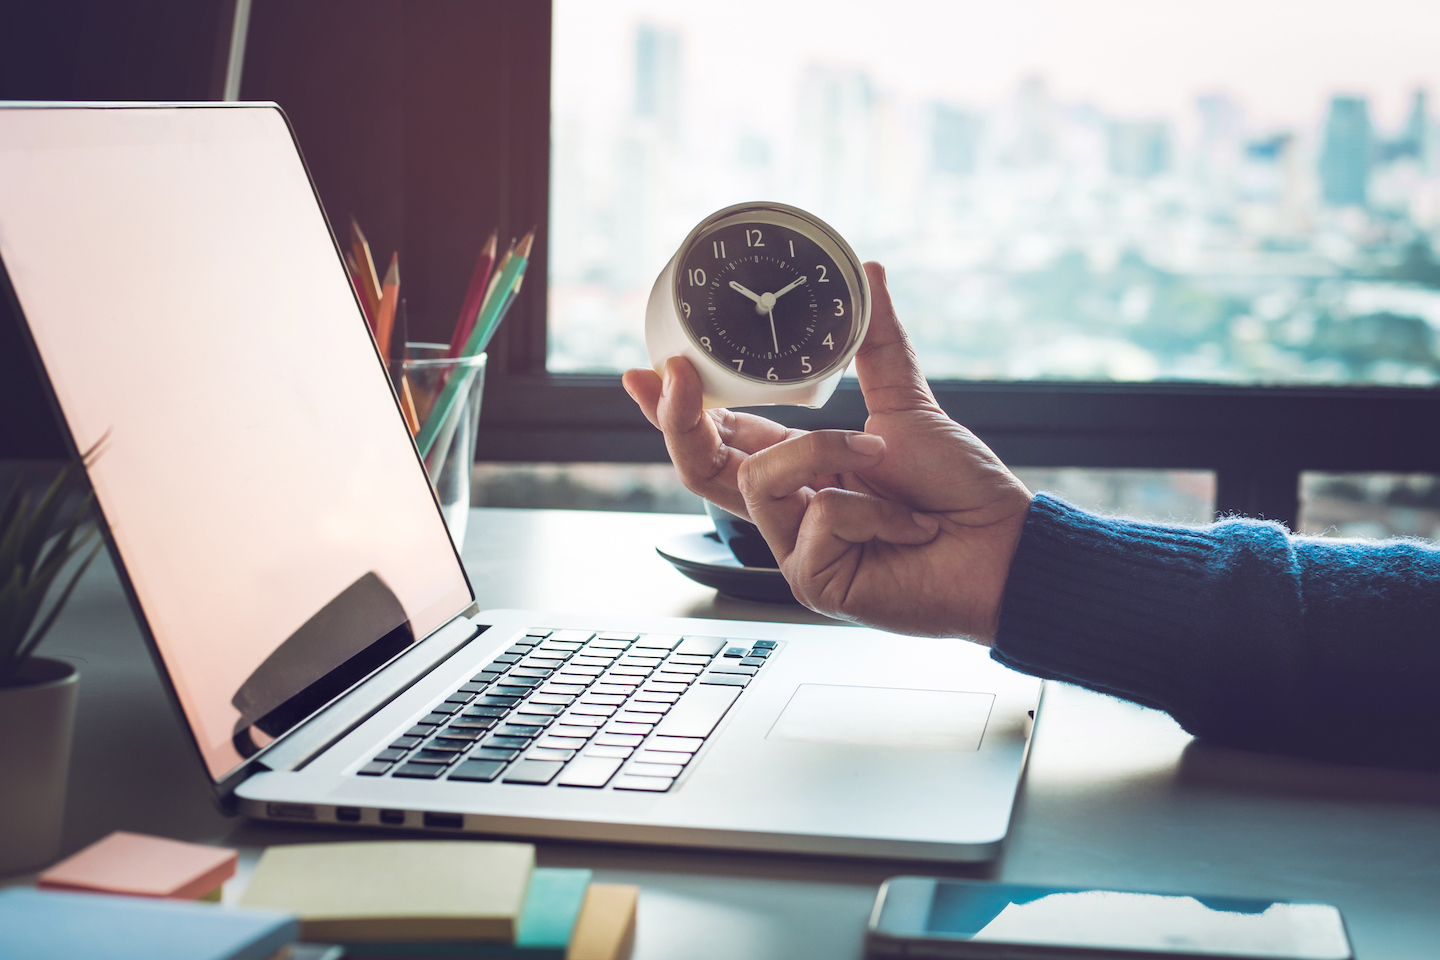 To Improve Your Time Management Skills, Do These 4 Things